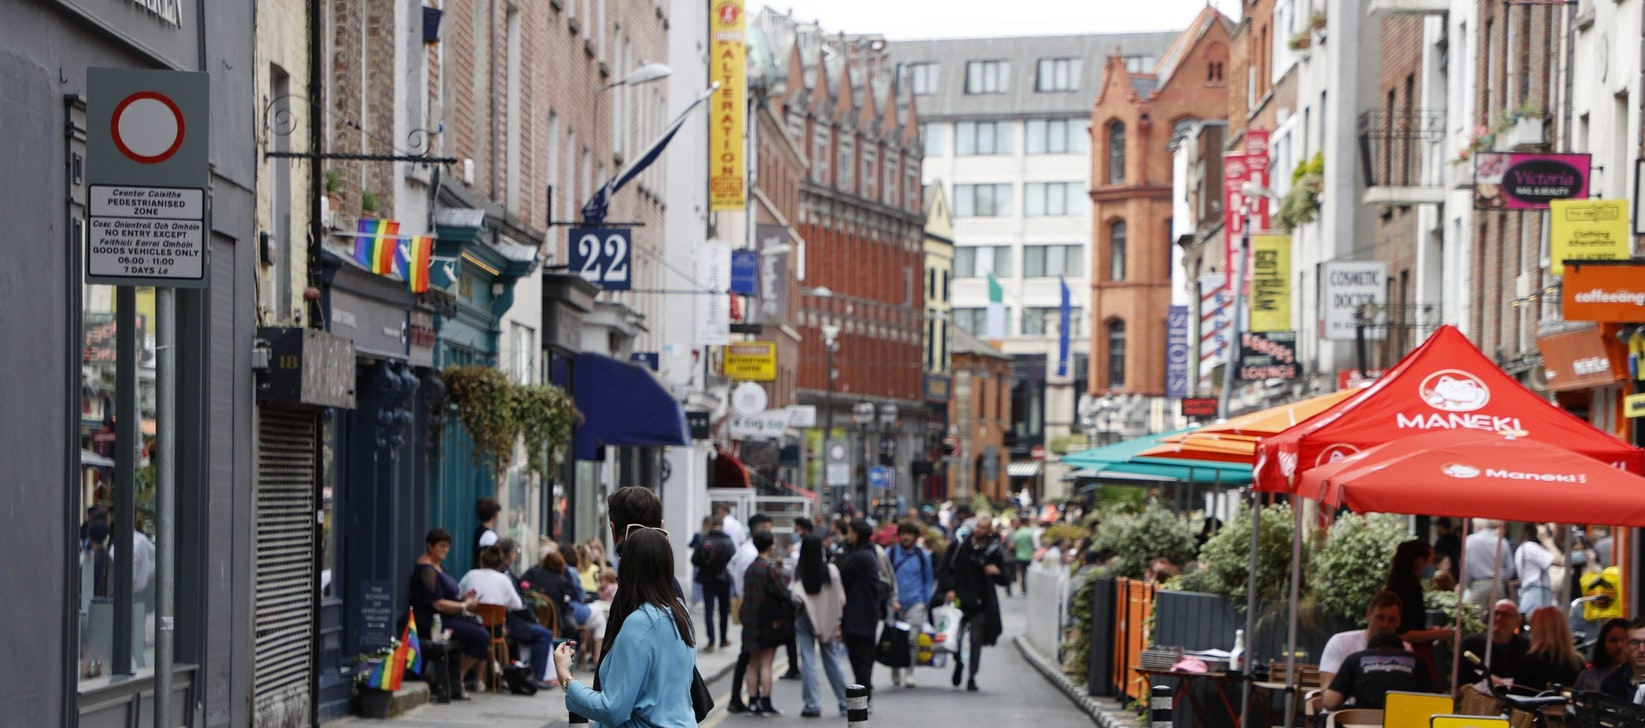 Dublin PMI shows business activity accelerating in Q3